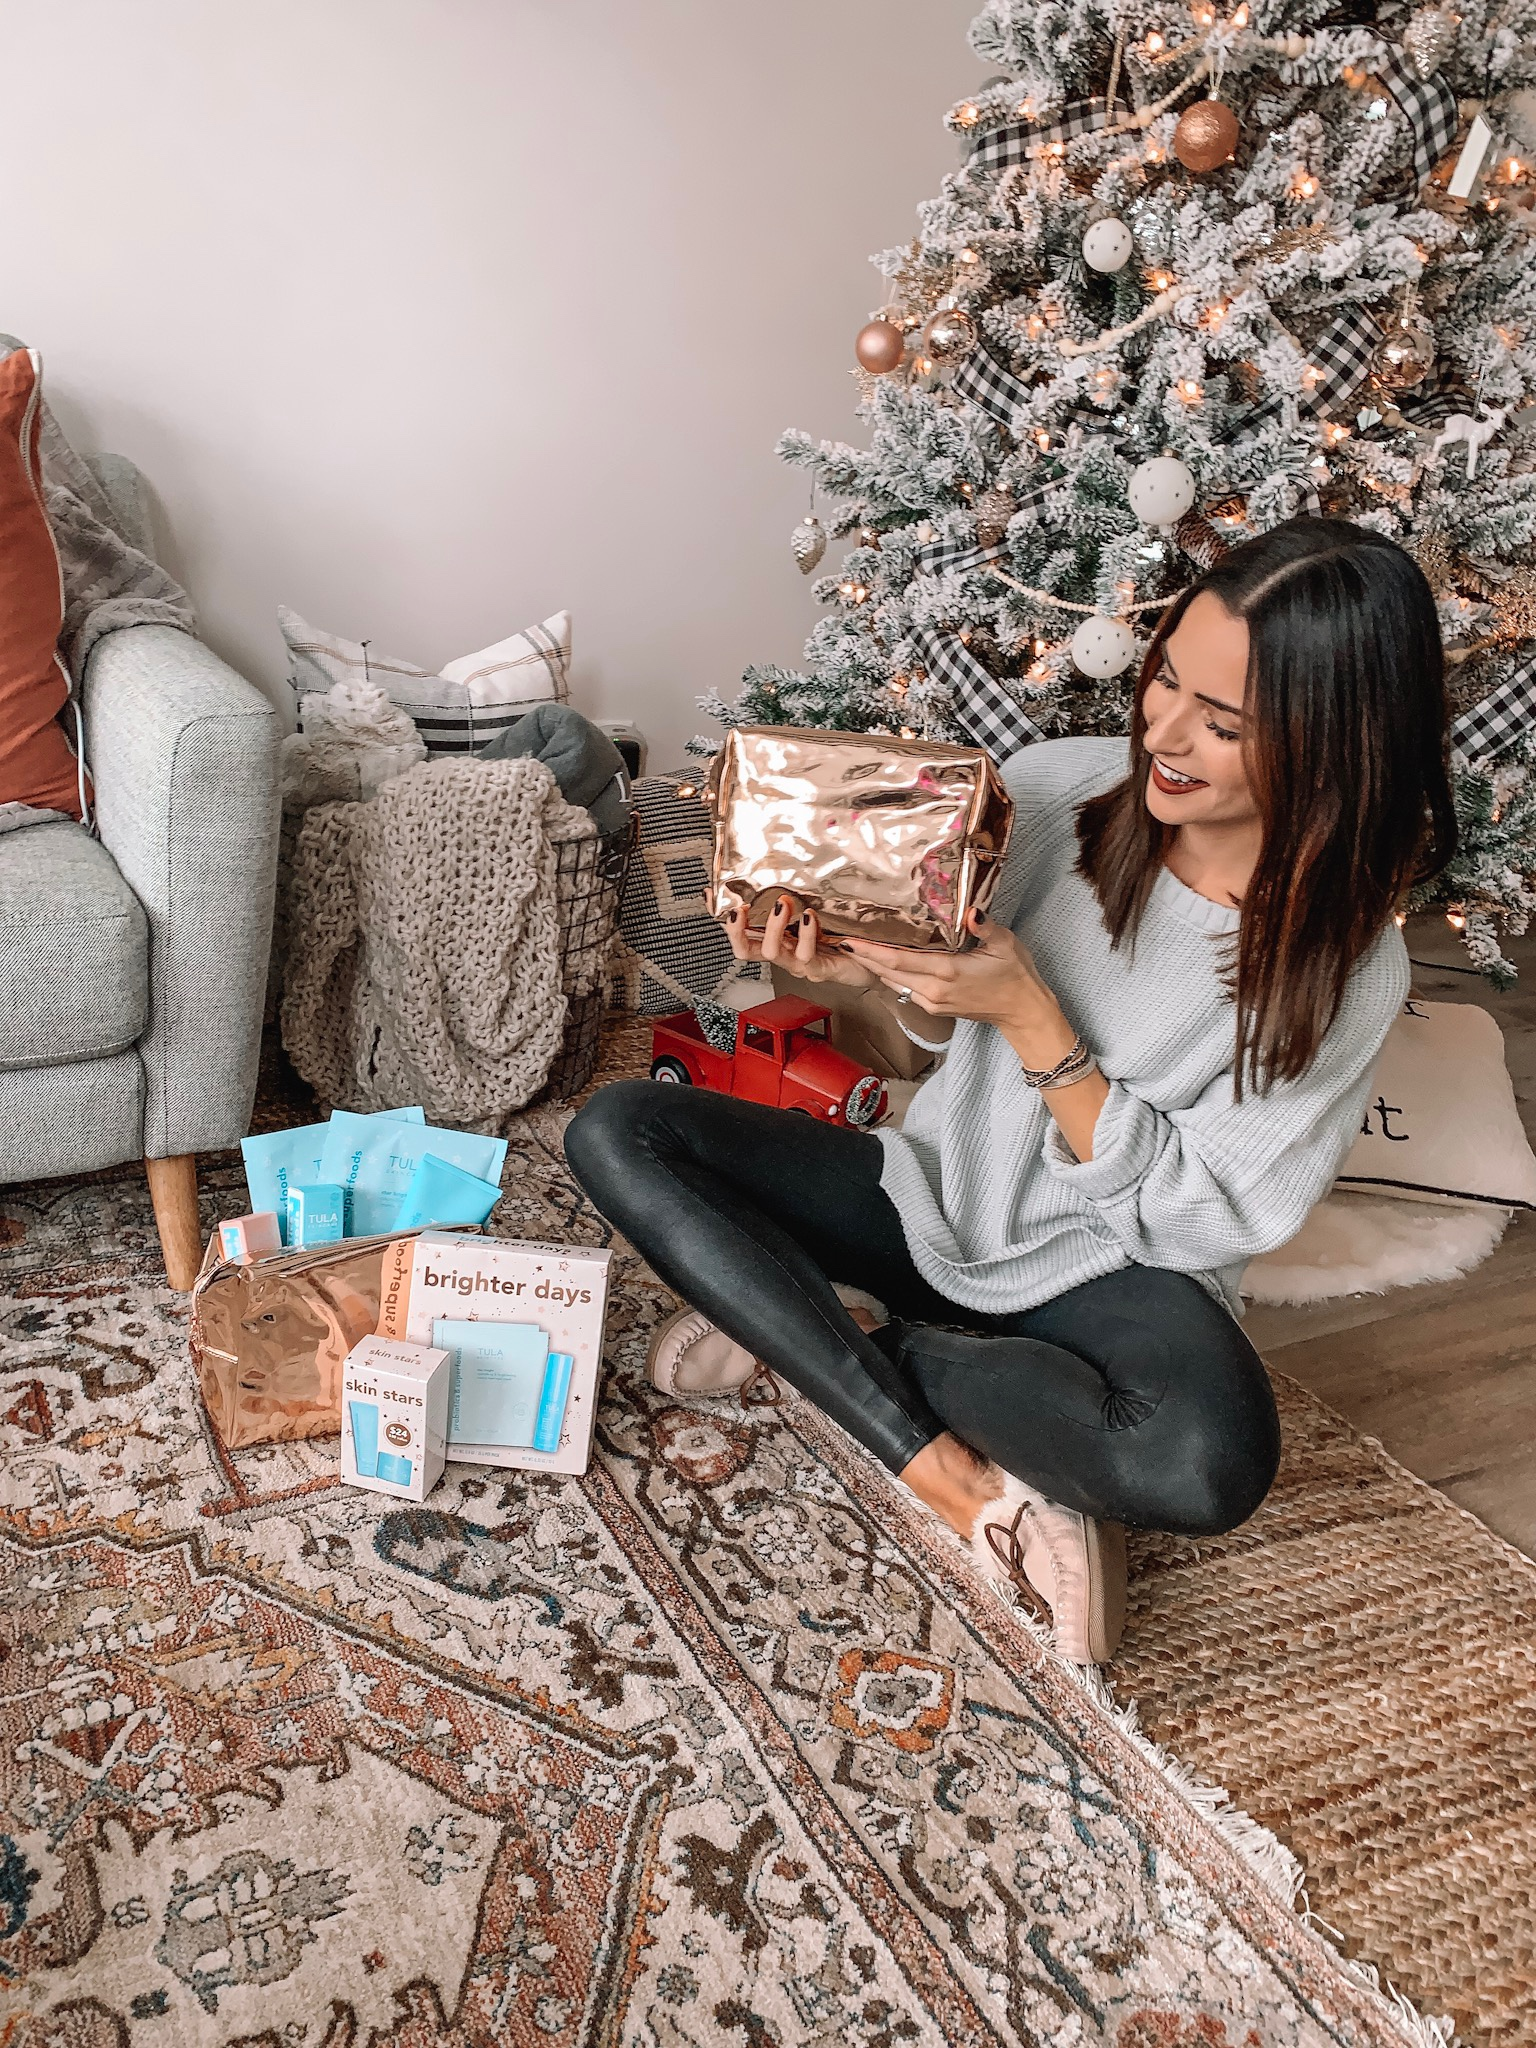 tula holiday kits, gift guide for skincare lovers, gift ideas for her